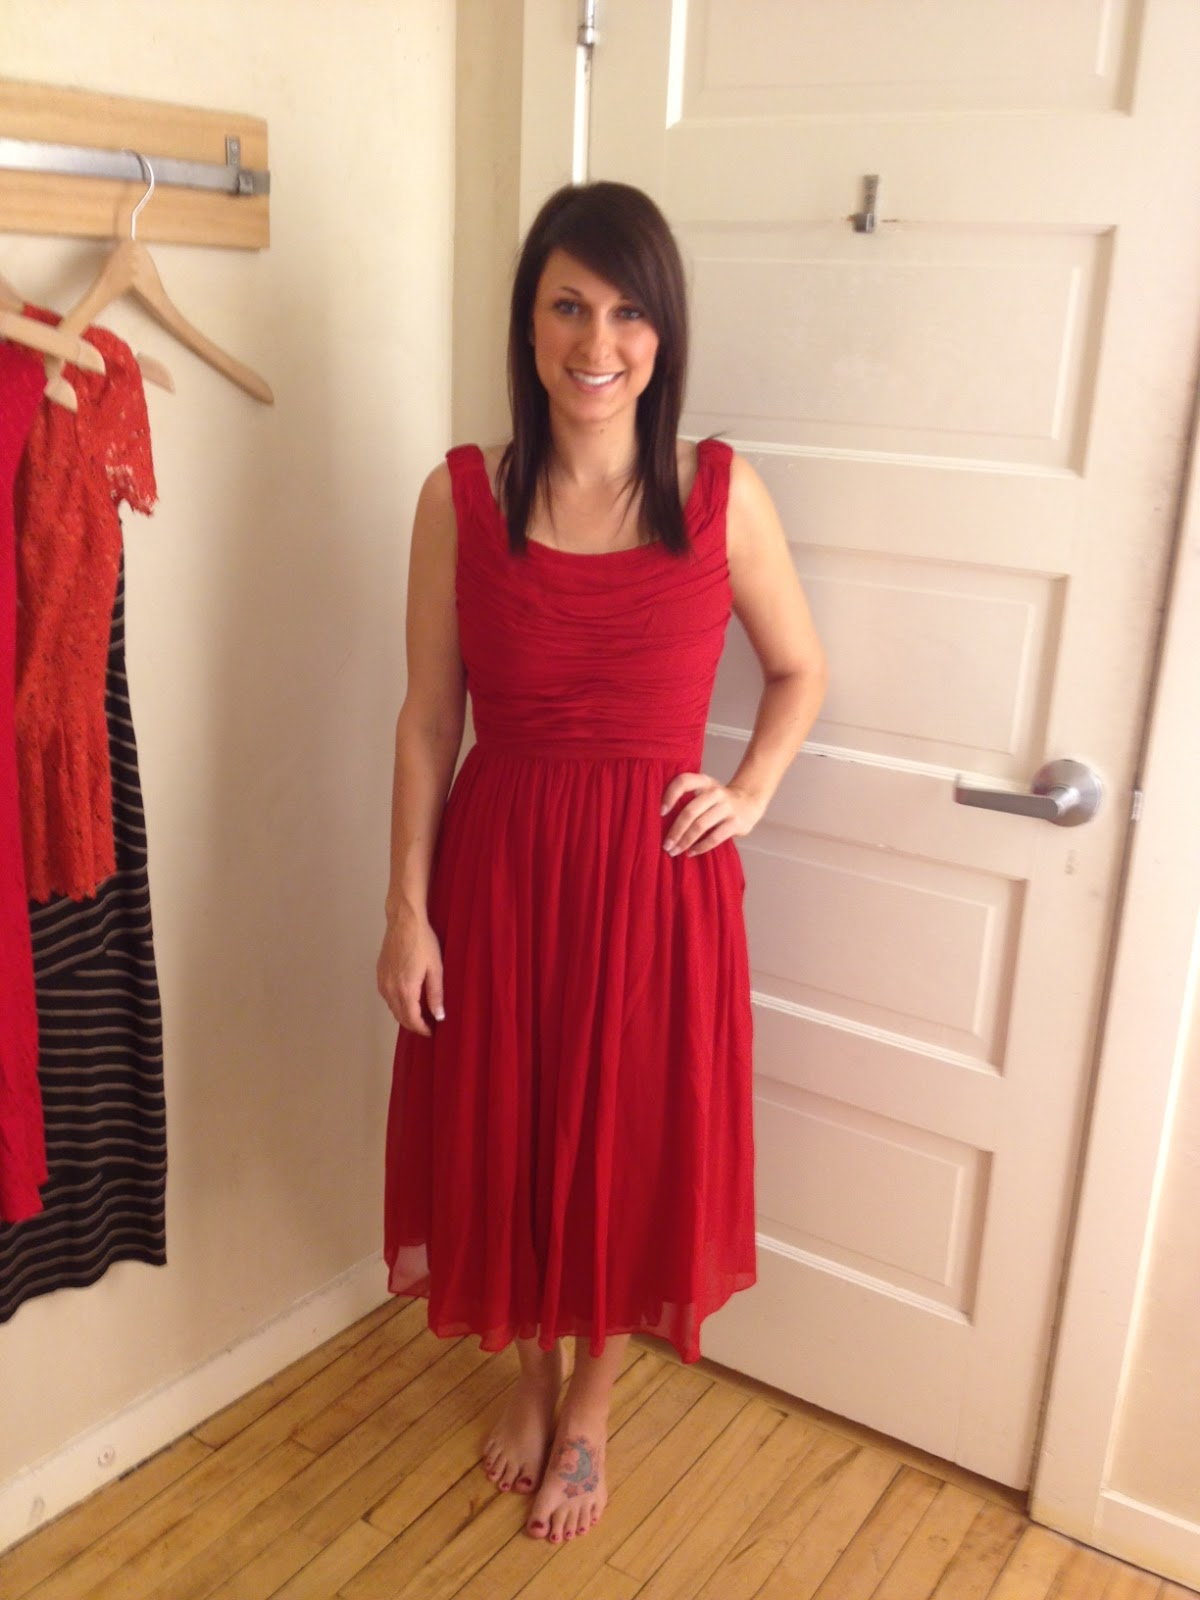 Here Is Moulinette Soeurs Gracia Dress I Ve Been Wanting To Try This Little Number On Forever Runs Large M Wearing A Size 2 And It Was